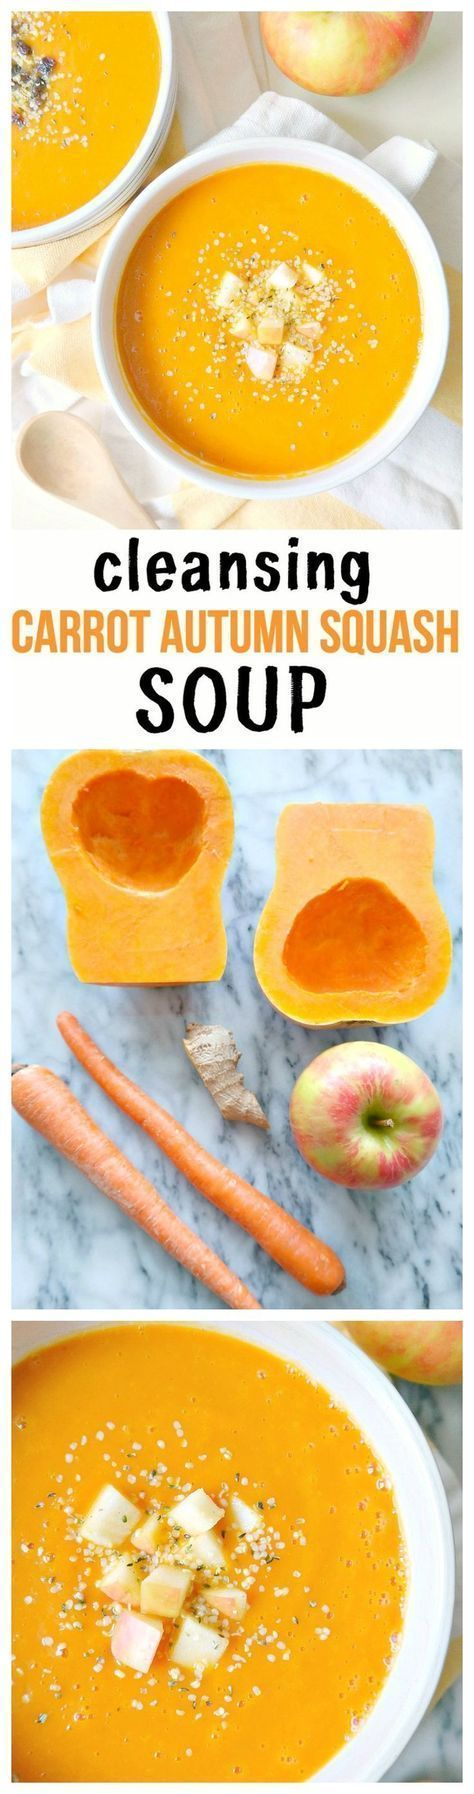 Cleansing Carrot Autumn Squash Soup - vegan, gluten-free, oil-free, low-fat and